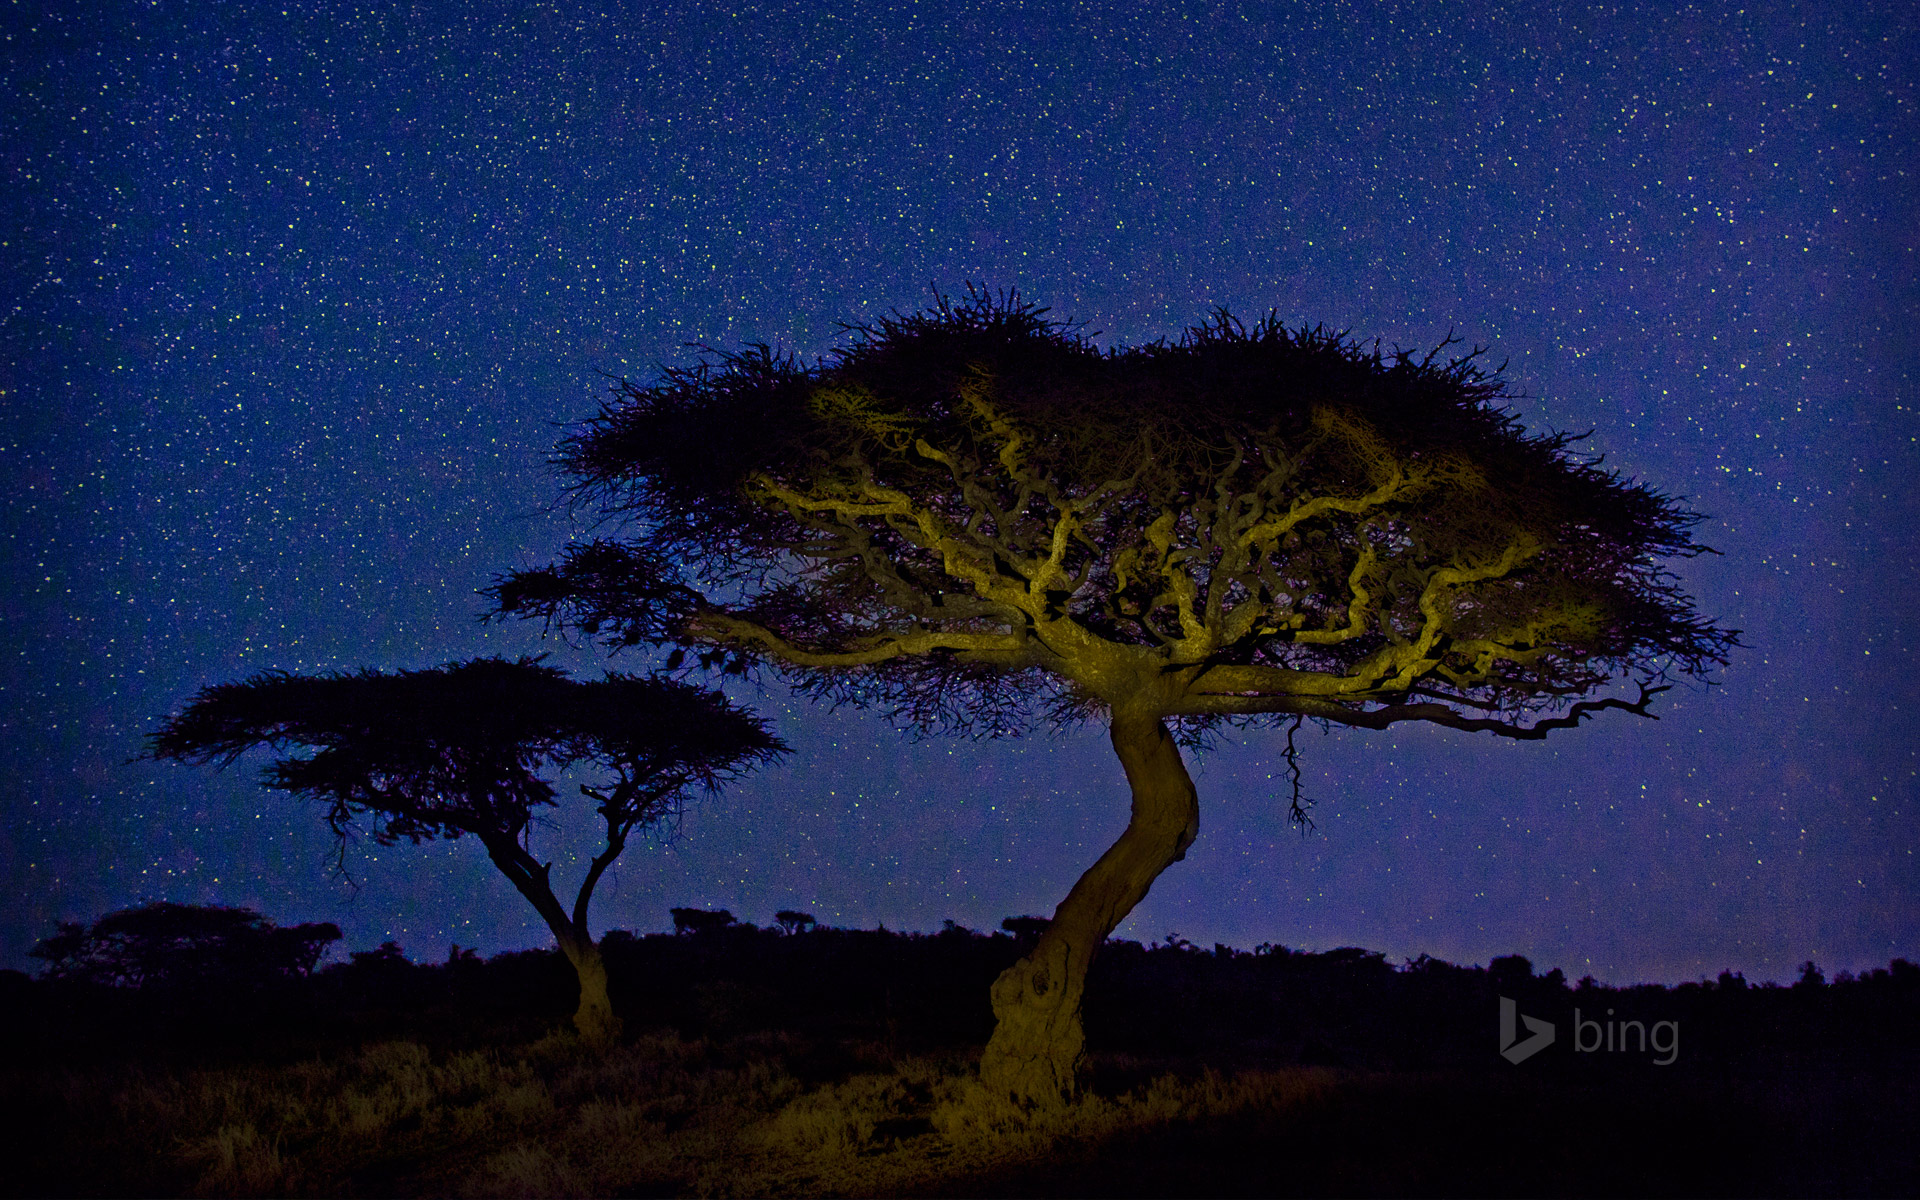 Acacia trees in Lewa Wildlife Conservancy, Kenya